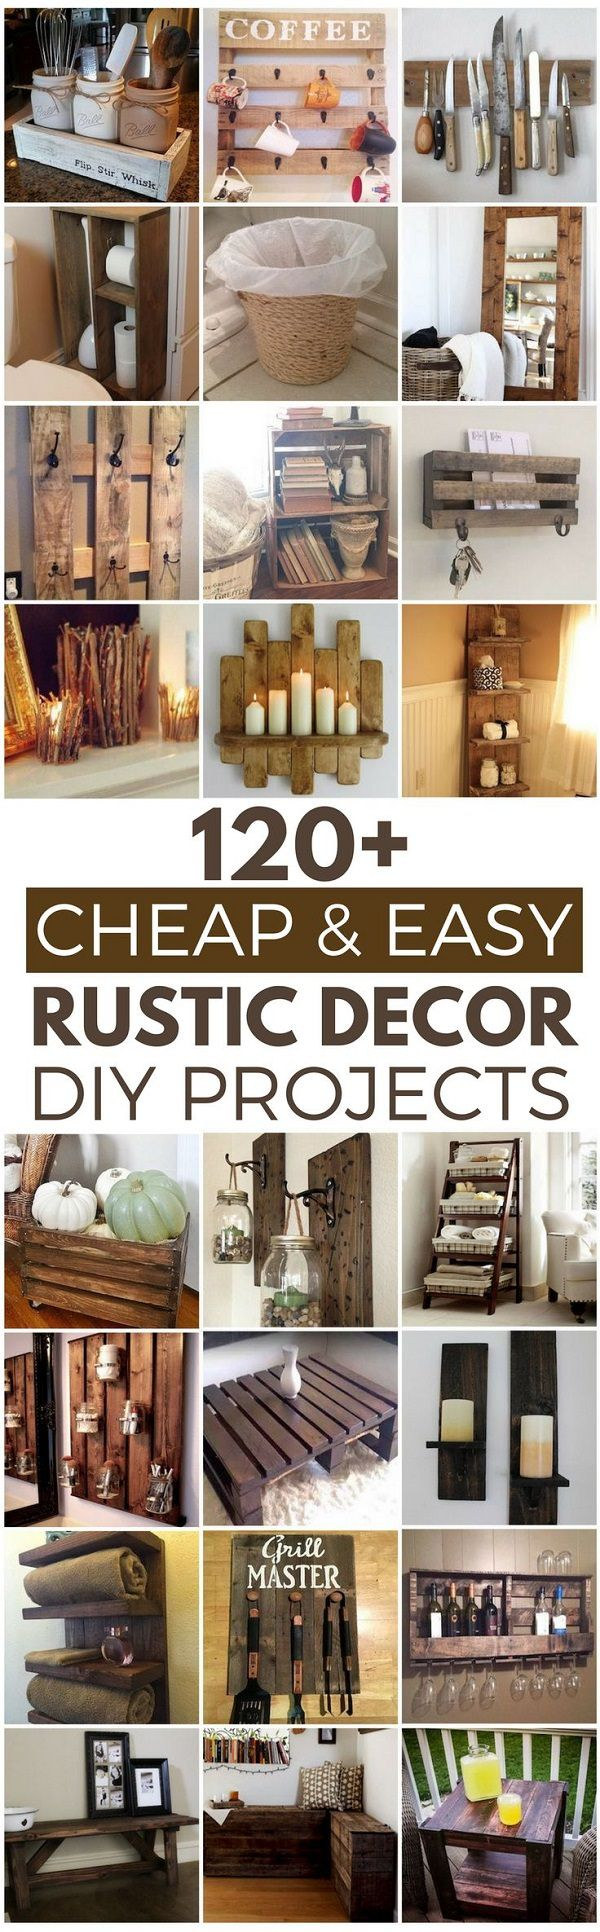 25 best ideas about rustic cottage on pinterest rustic for Cheap decorative items